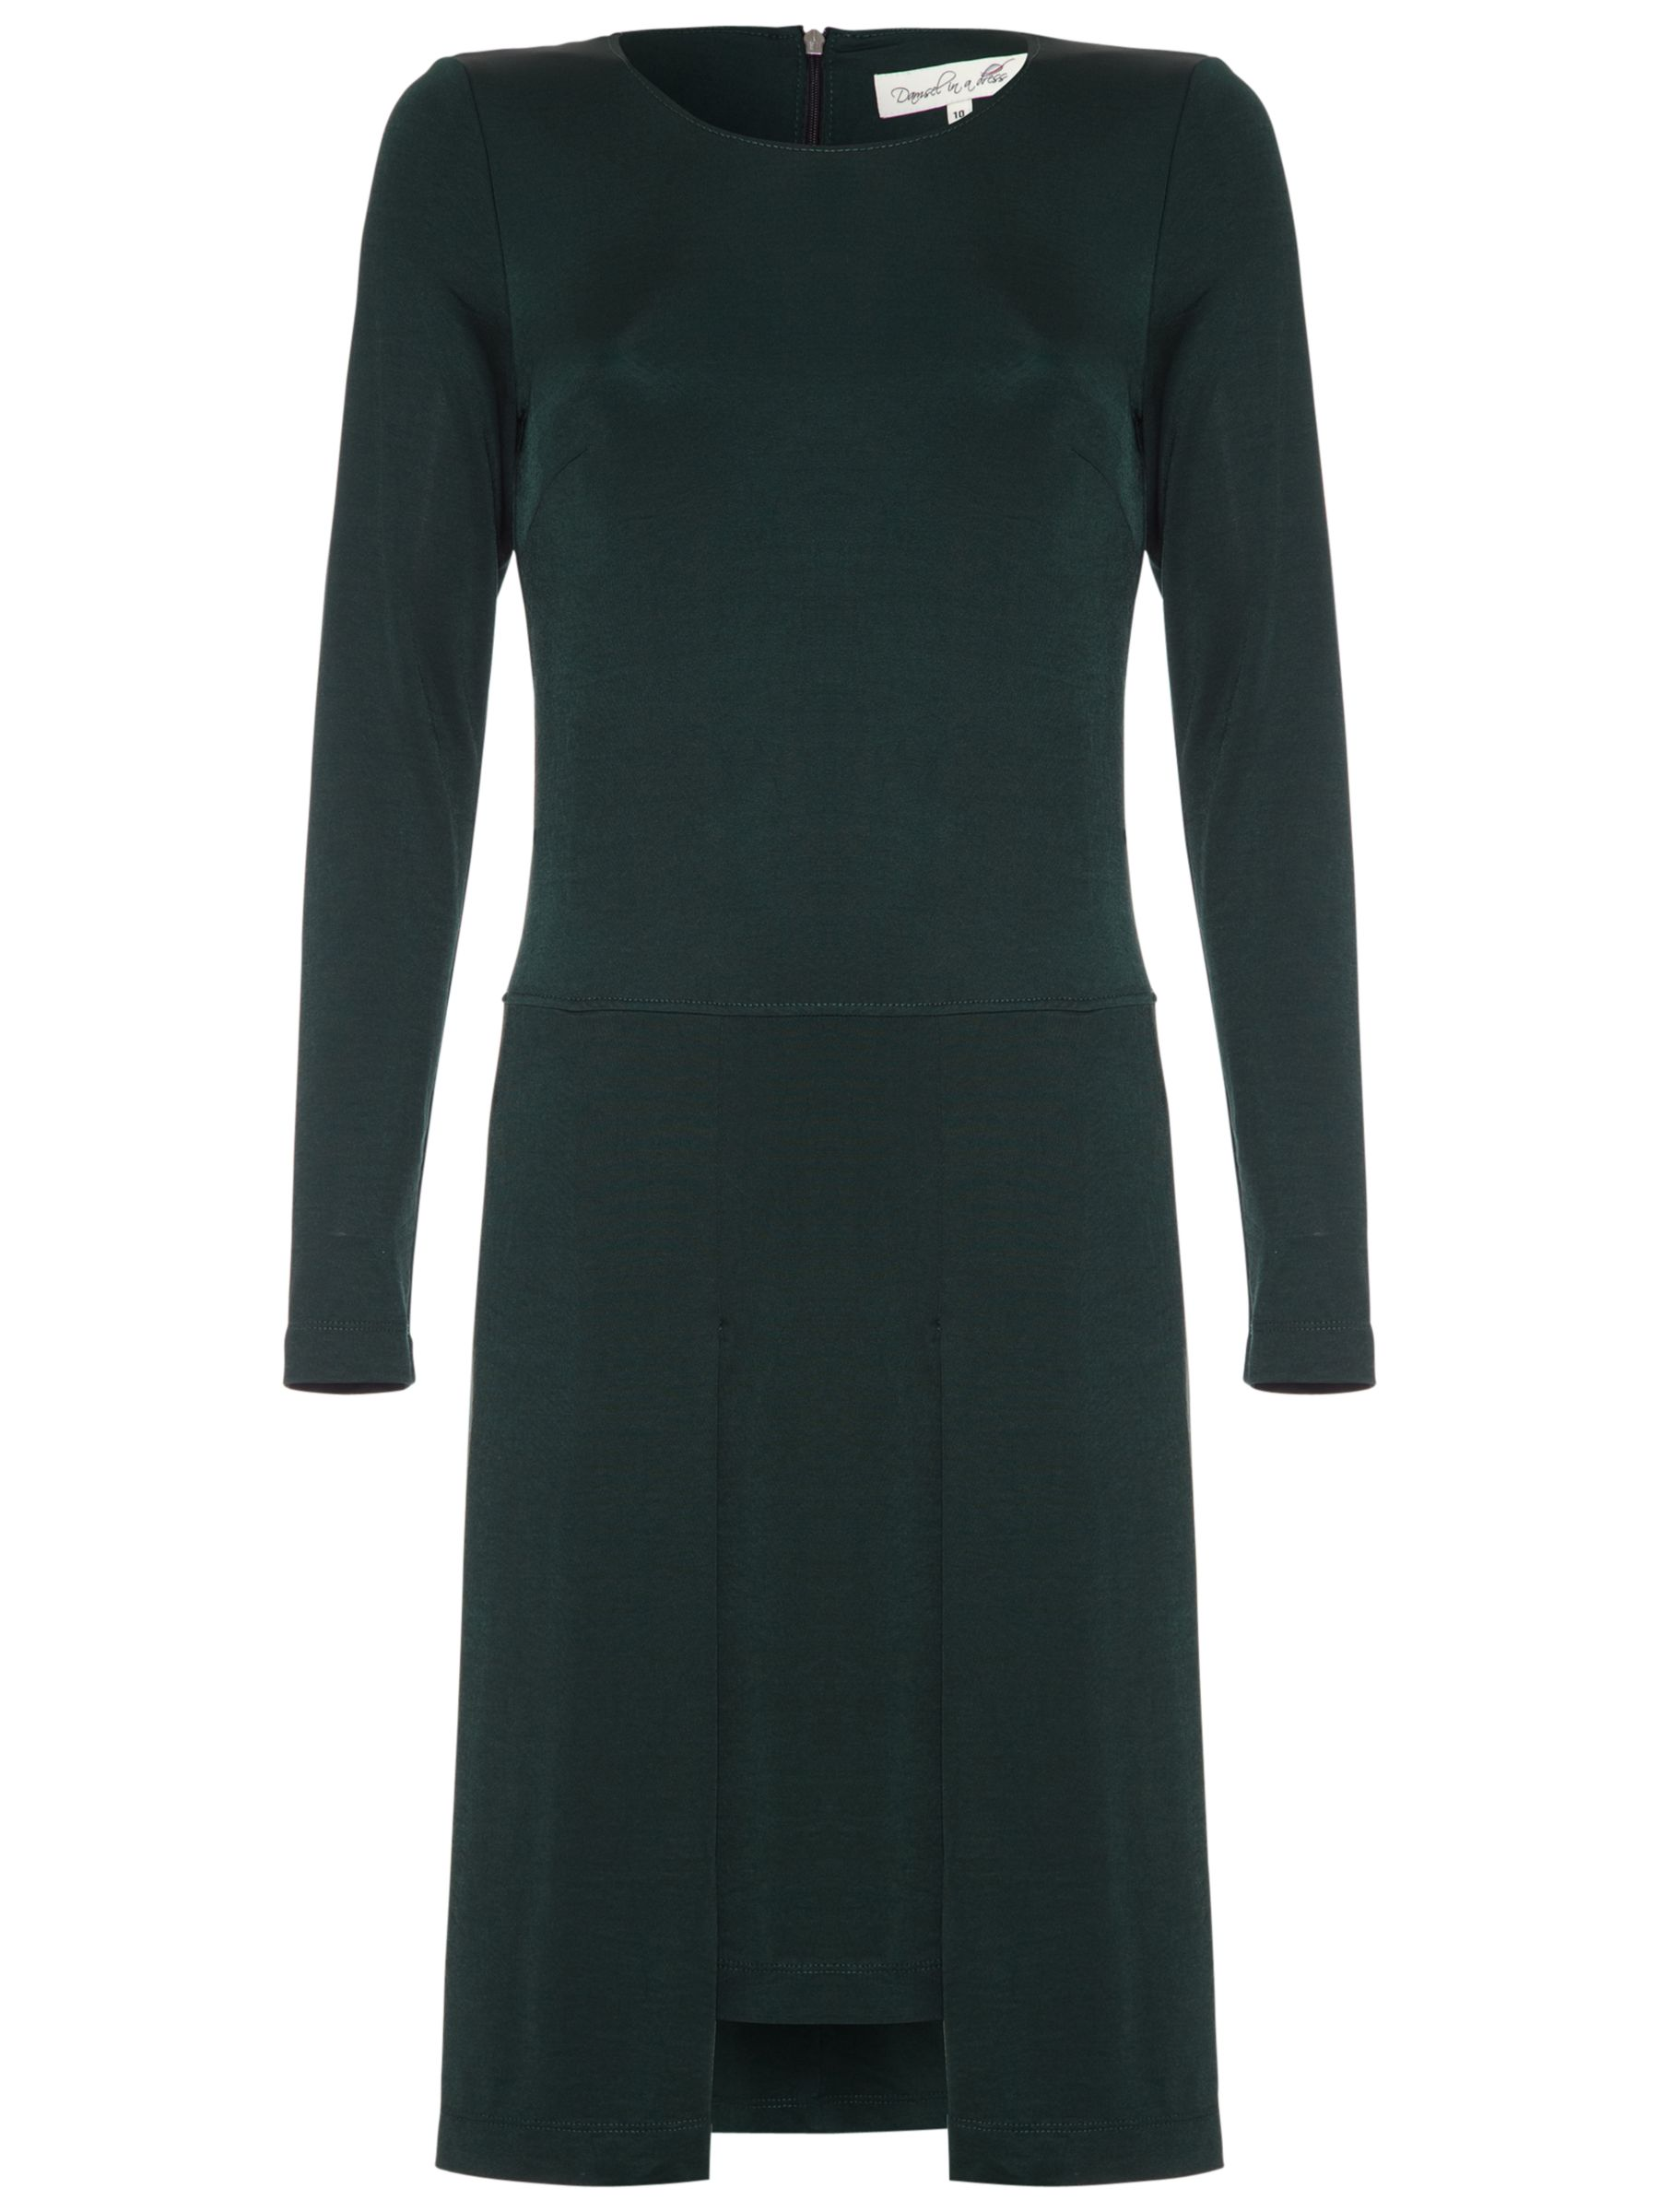 damsel in a dress odell silk dress green, damsel, dress, odell, silk, green, damsel in a dress, 16 14 10, clearance, womenswear offers, womens dresses offers, women, inactive womenswear, new reductions, womens dresses, special offers, up to 30% off selected damsel in a dress, 1691990